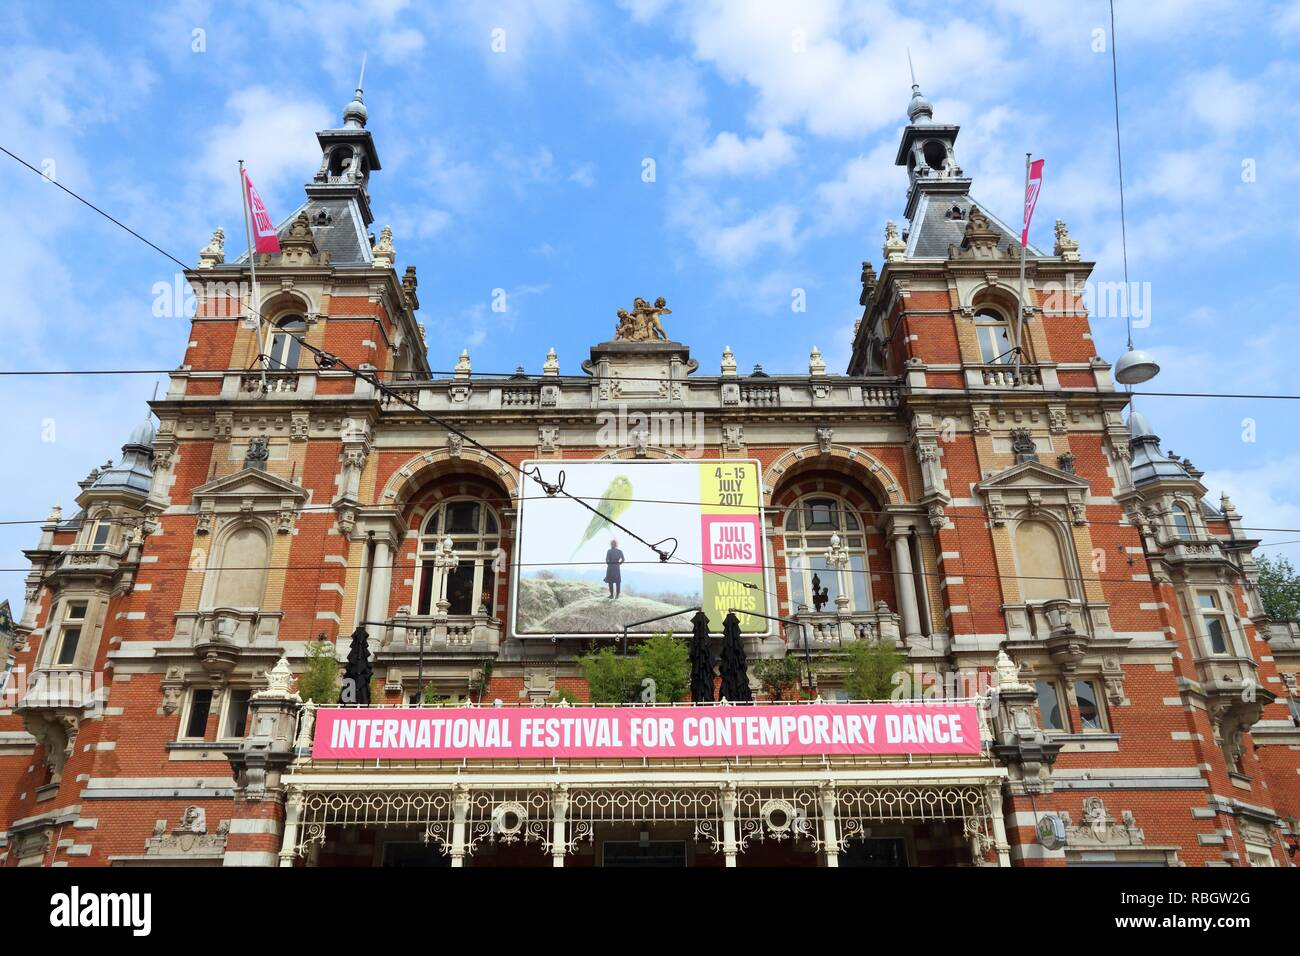 AMSTERDAM, NETHERLANDS - JULY 8, 2017: Stadsschouwburg theatre at Leidseplein in Amsterdam. The neo-Renaissance style building dates back to 1894. - Stock Image